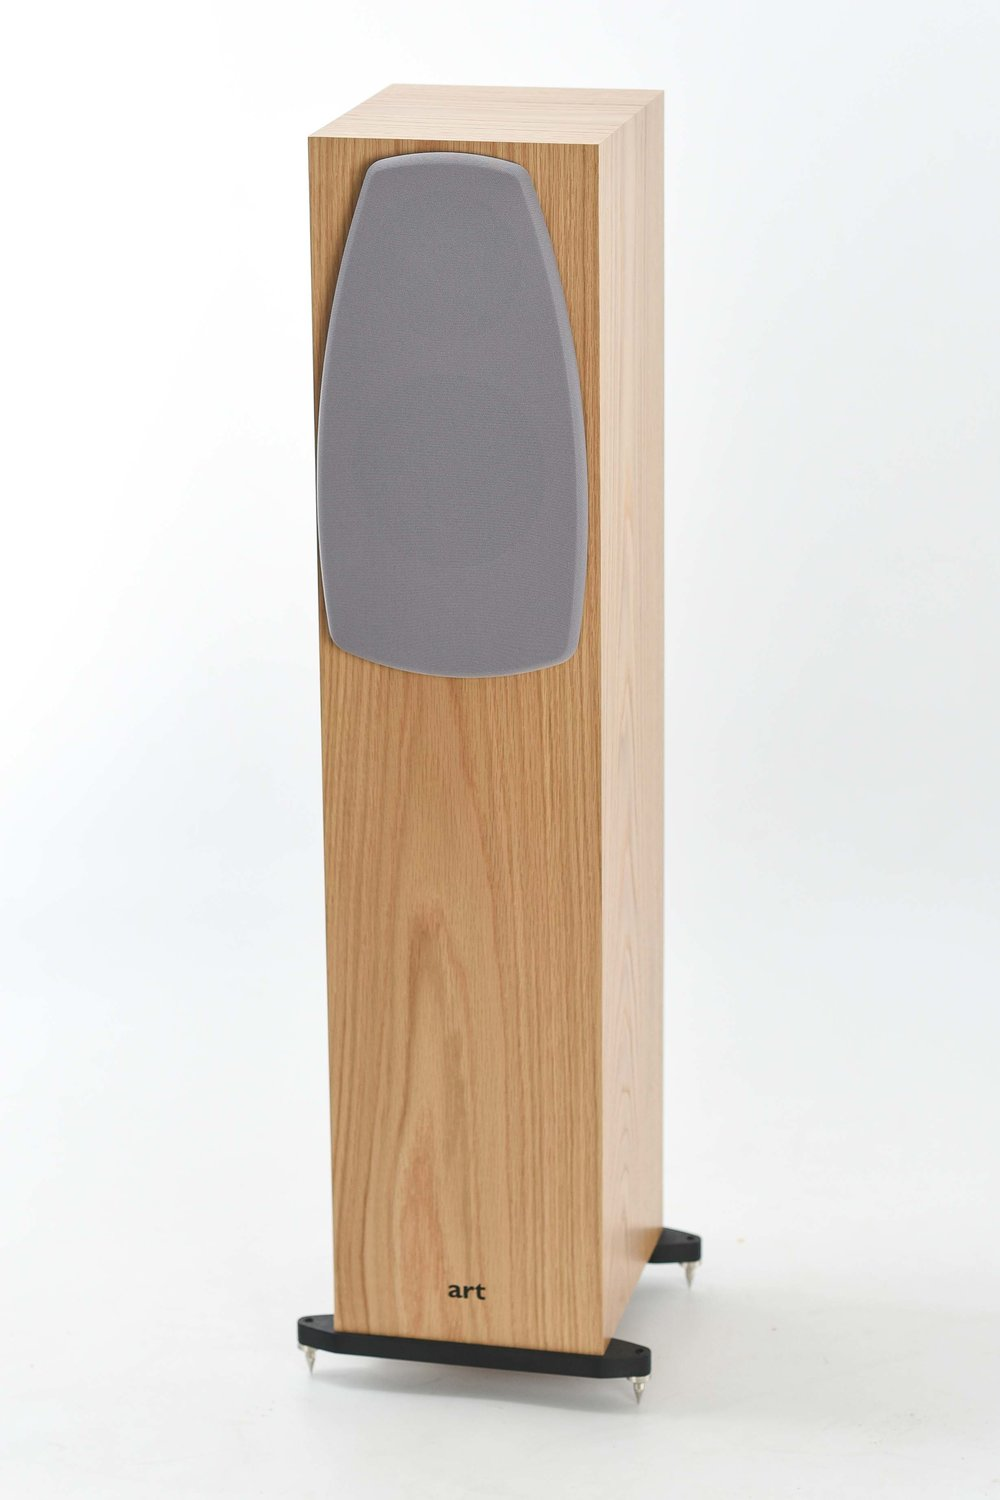 <b>ART Stiletto 6 Speakers</b>